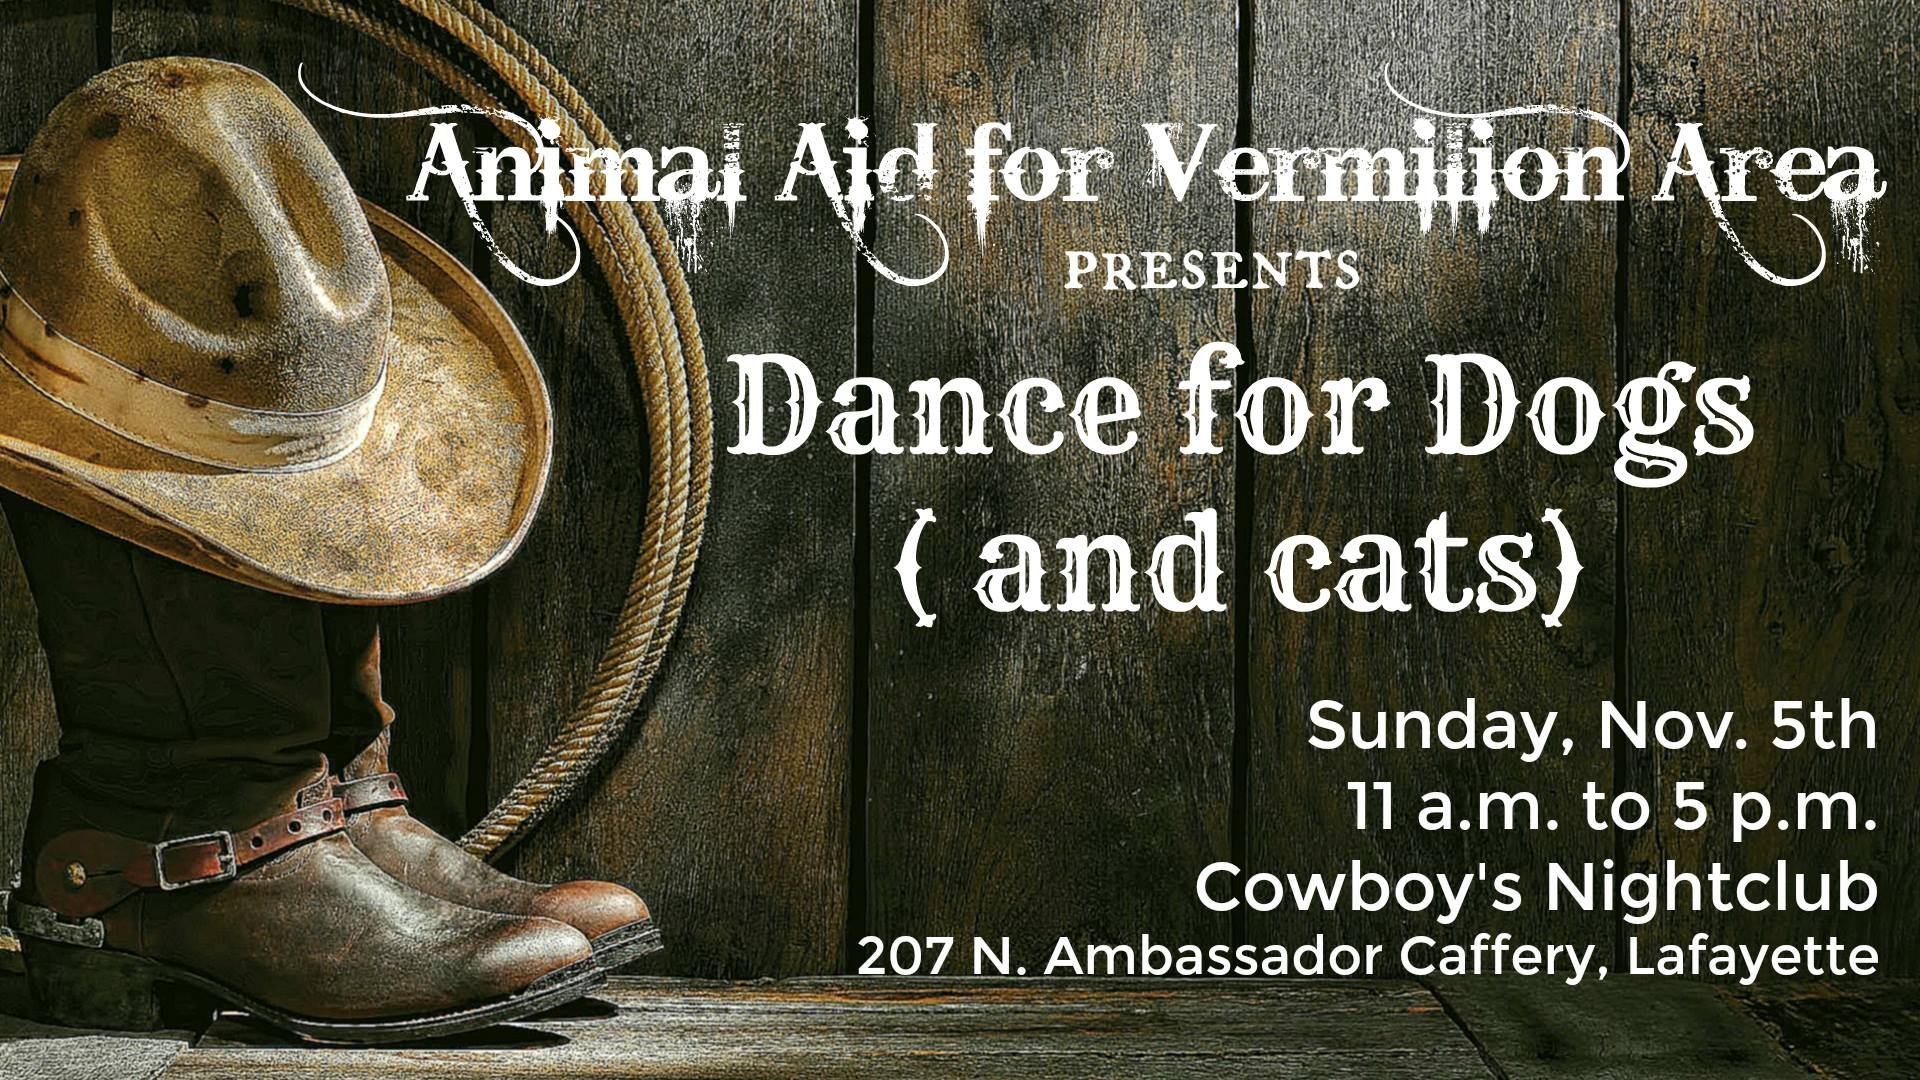 Dance for Dogs (and Cats) event / AAVA